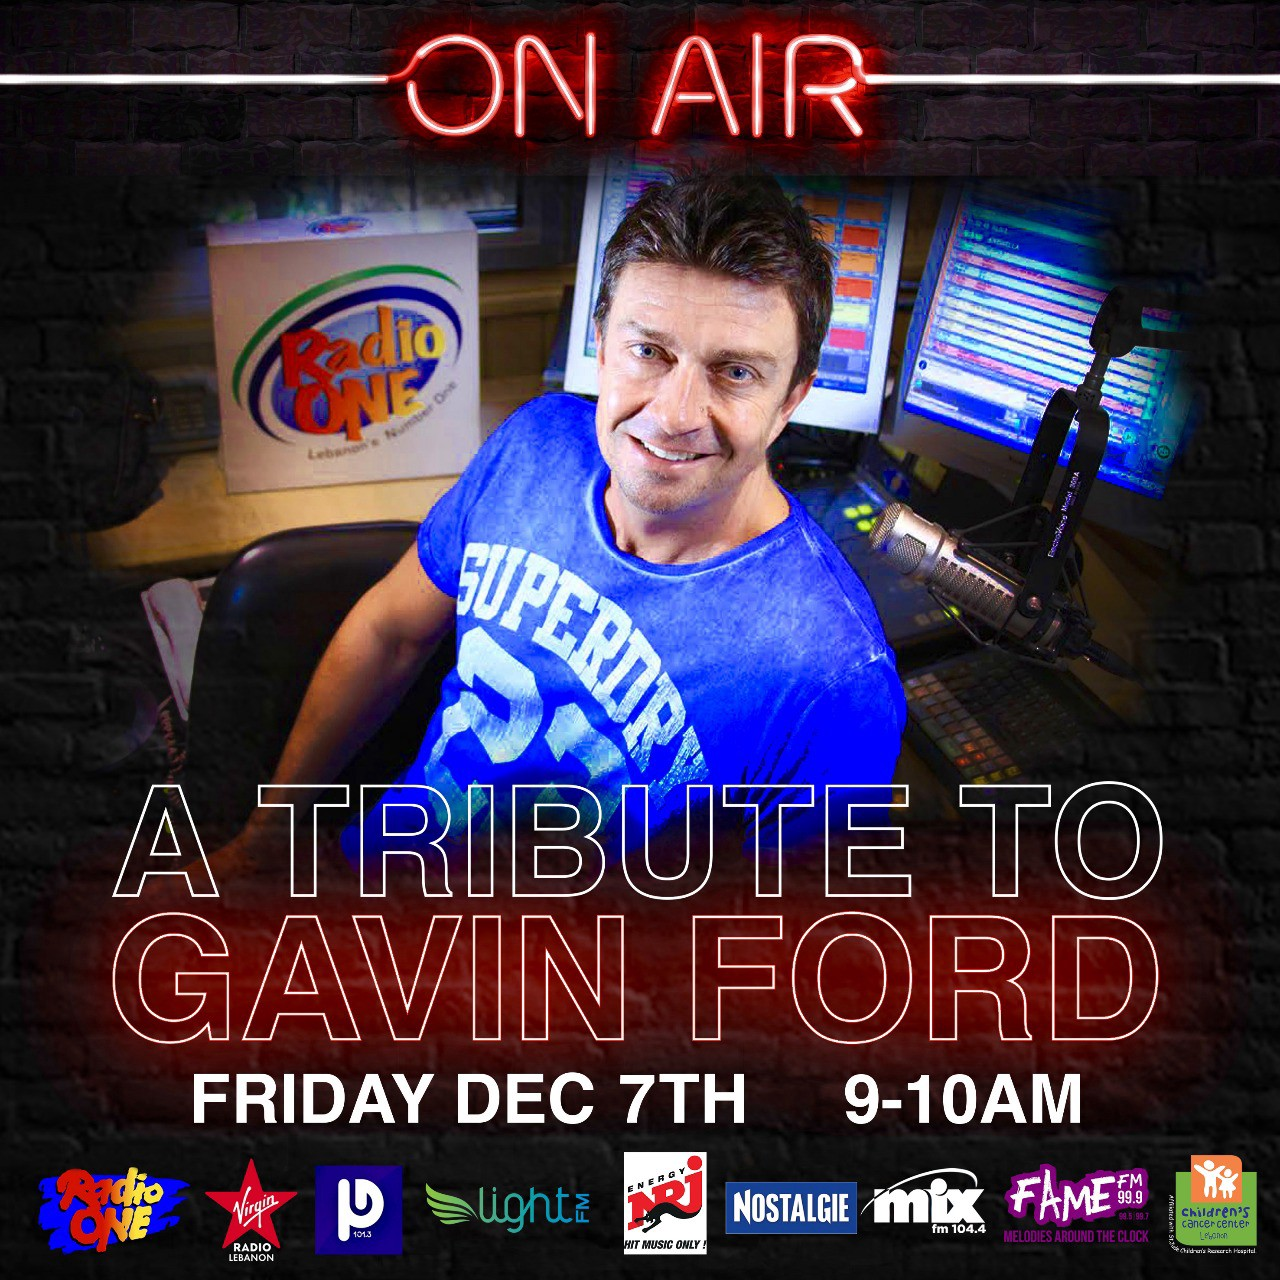 10 Radios to Simulcast Tribute After Gavin Ford Laid to Rest in Lebanon